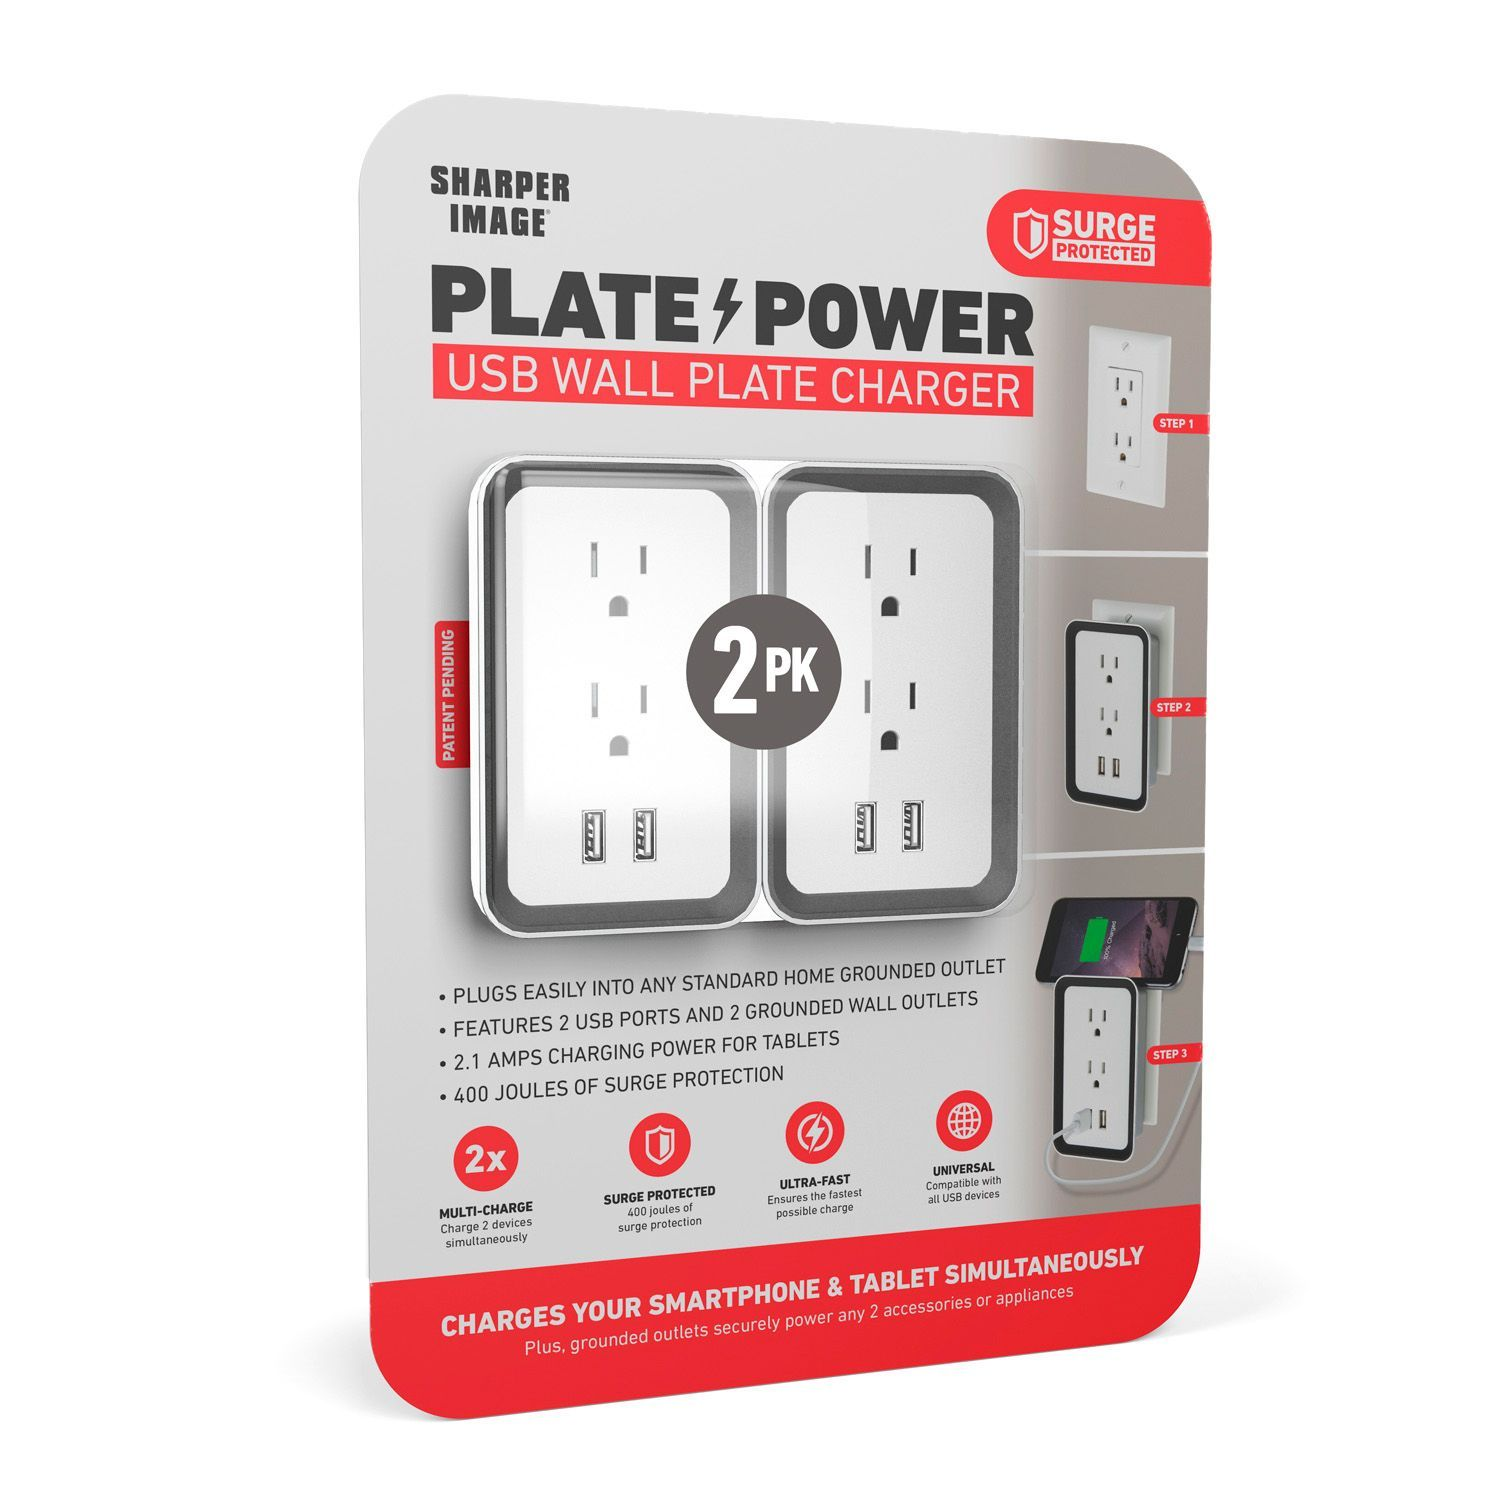 Sharper Image Plate Power Usb Wall Plate Charger 2 Pack Sams